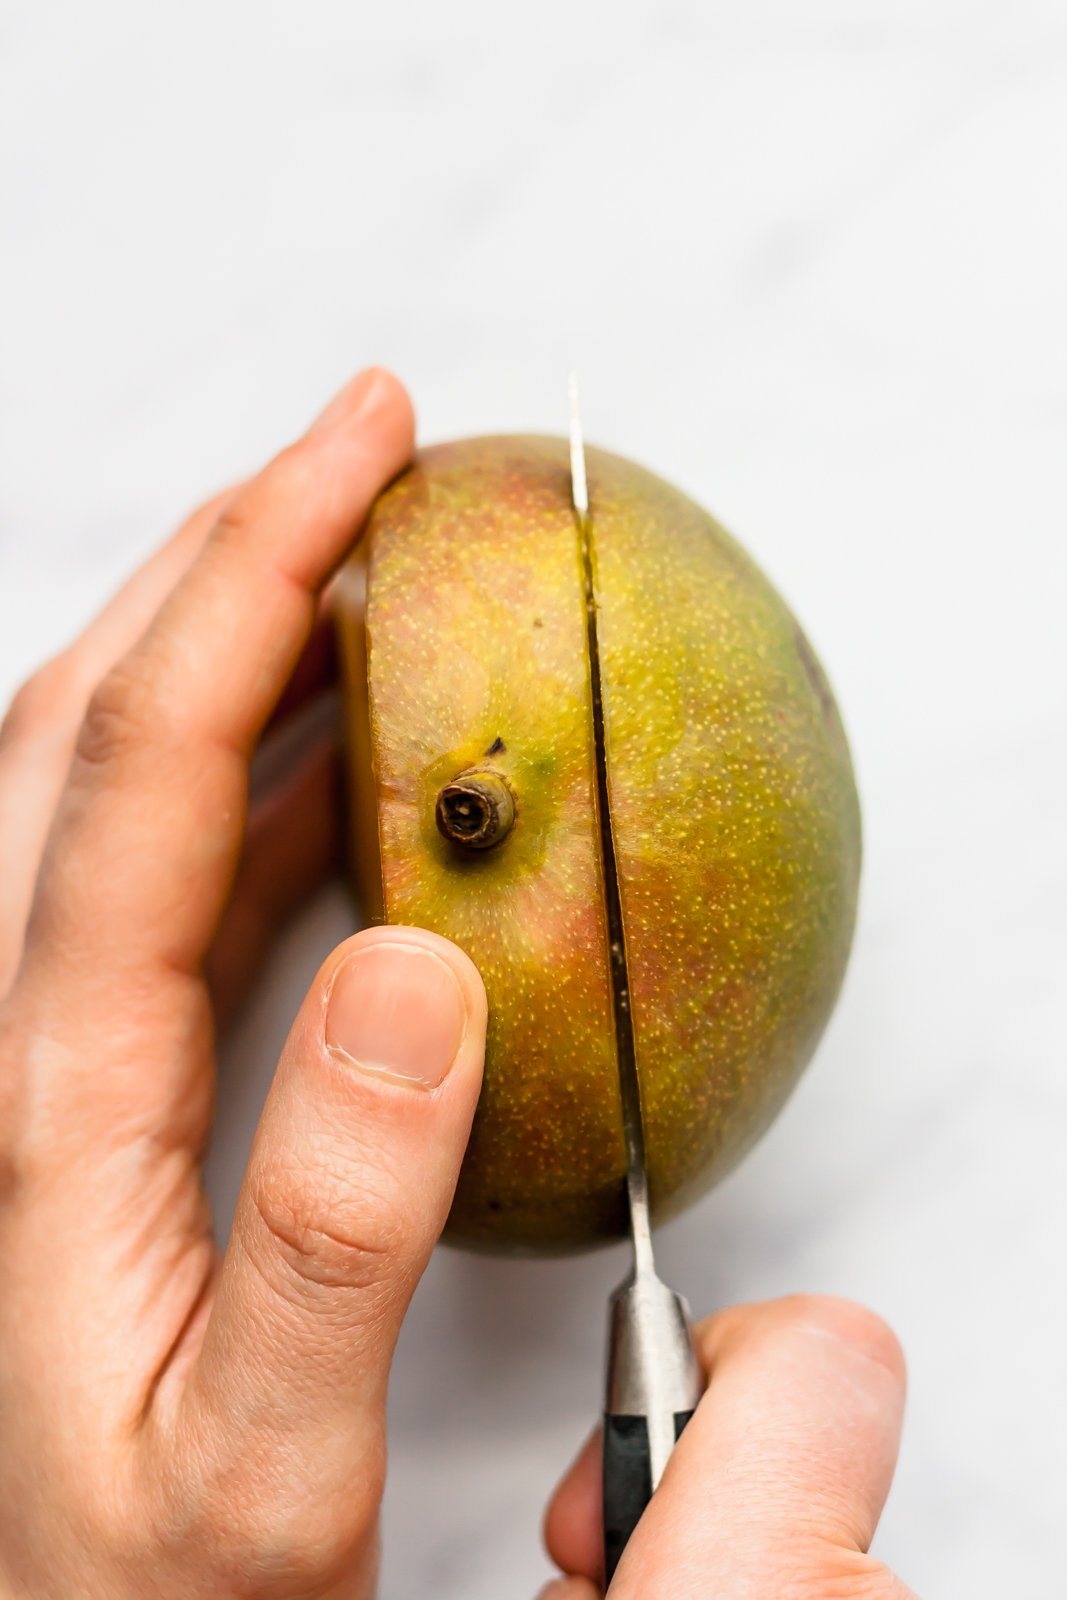 cutting half of a mango with a knife